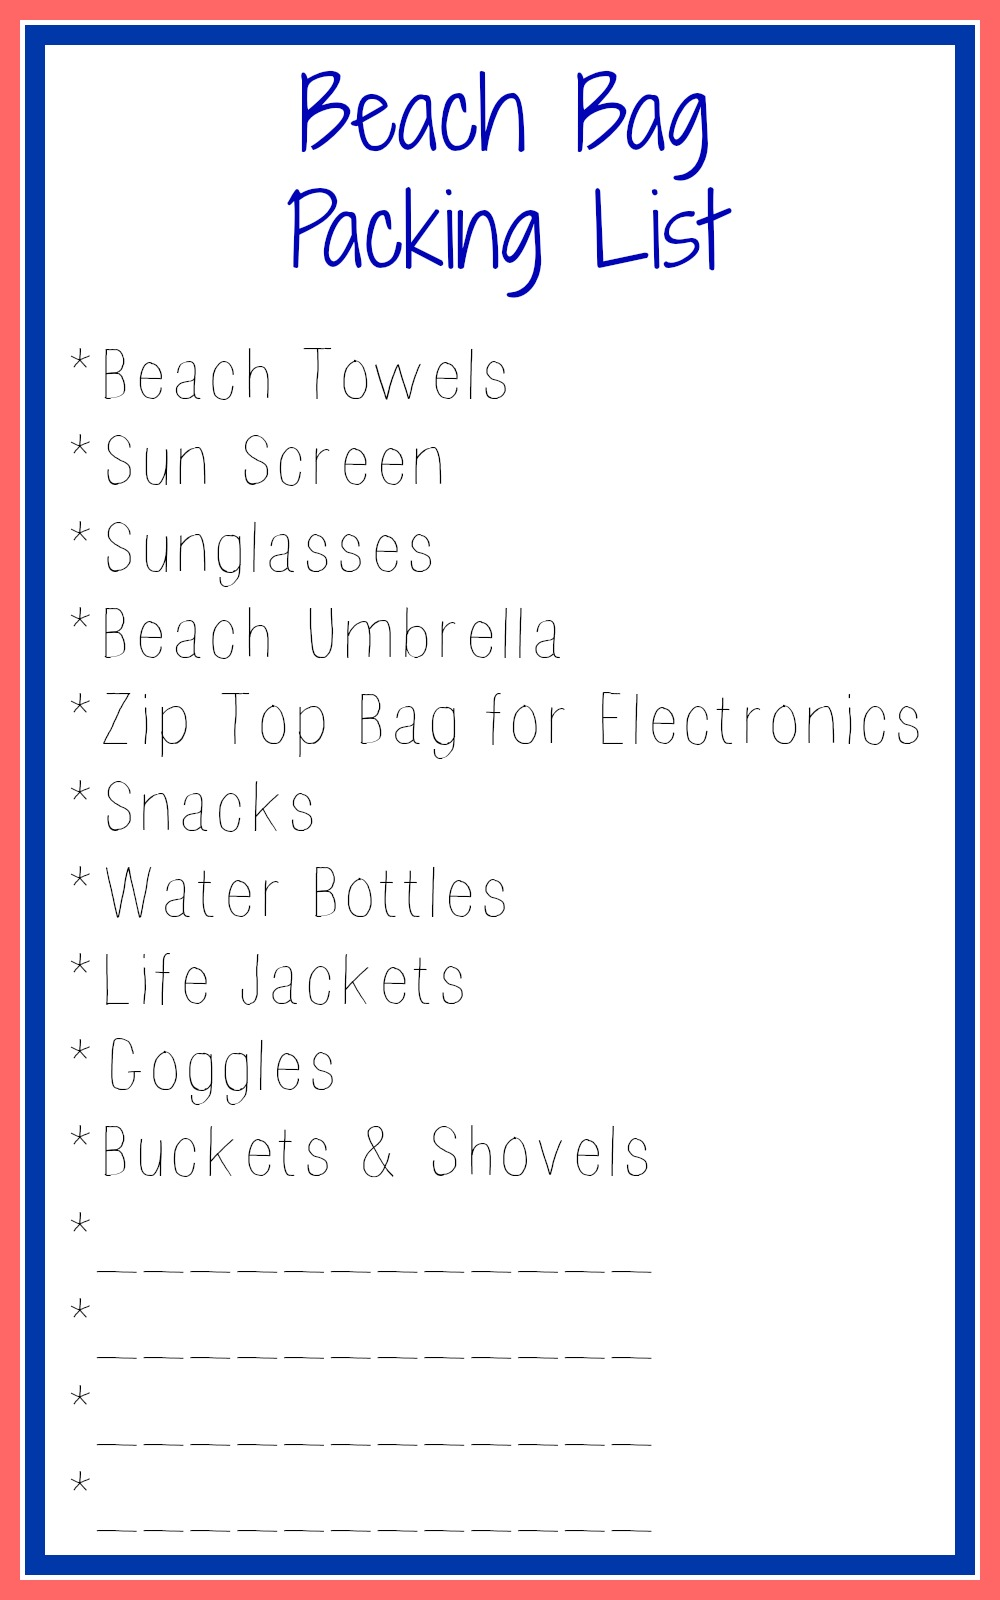 Enter The Simplified Beach Bag Packing List